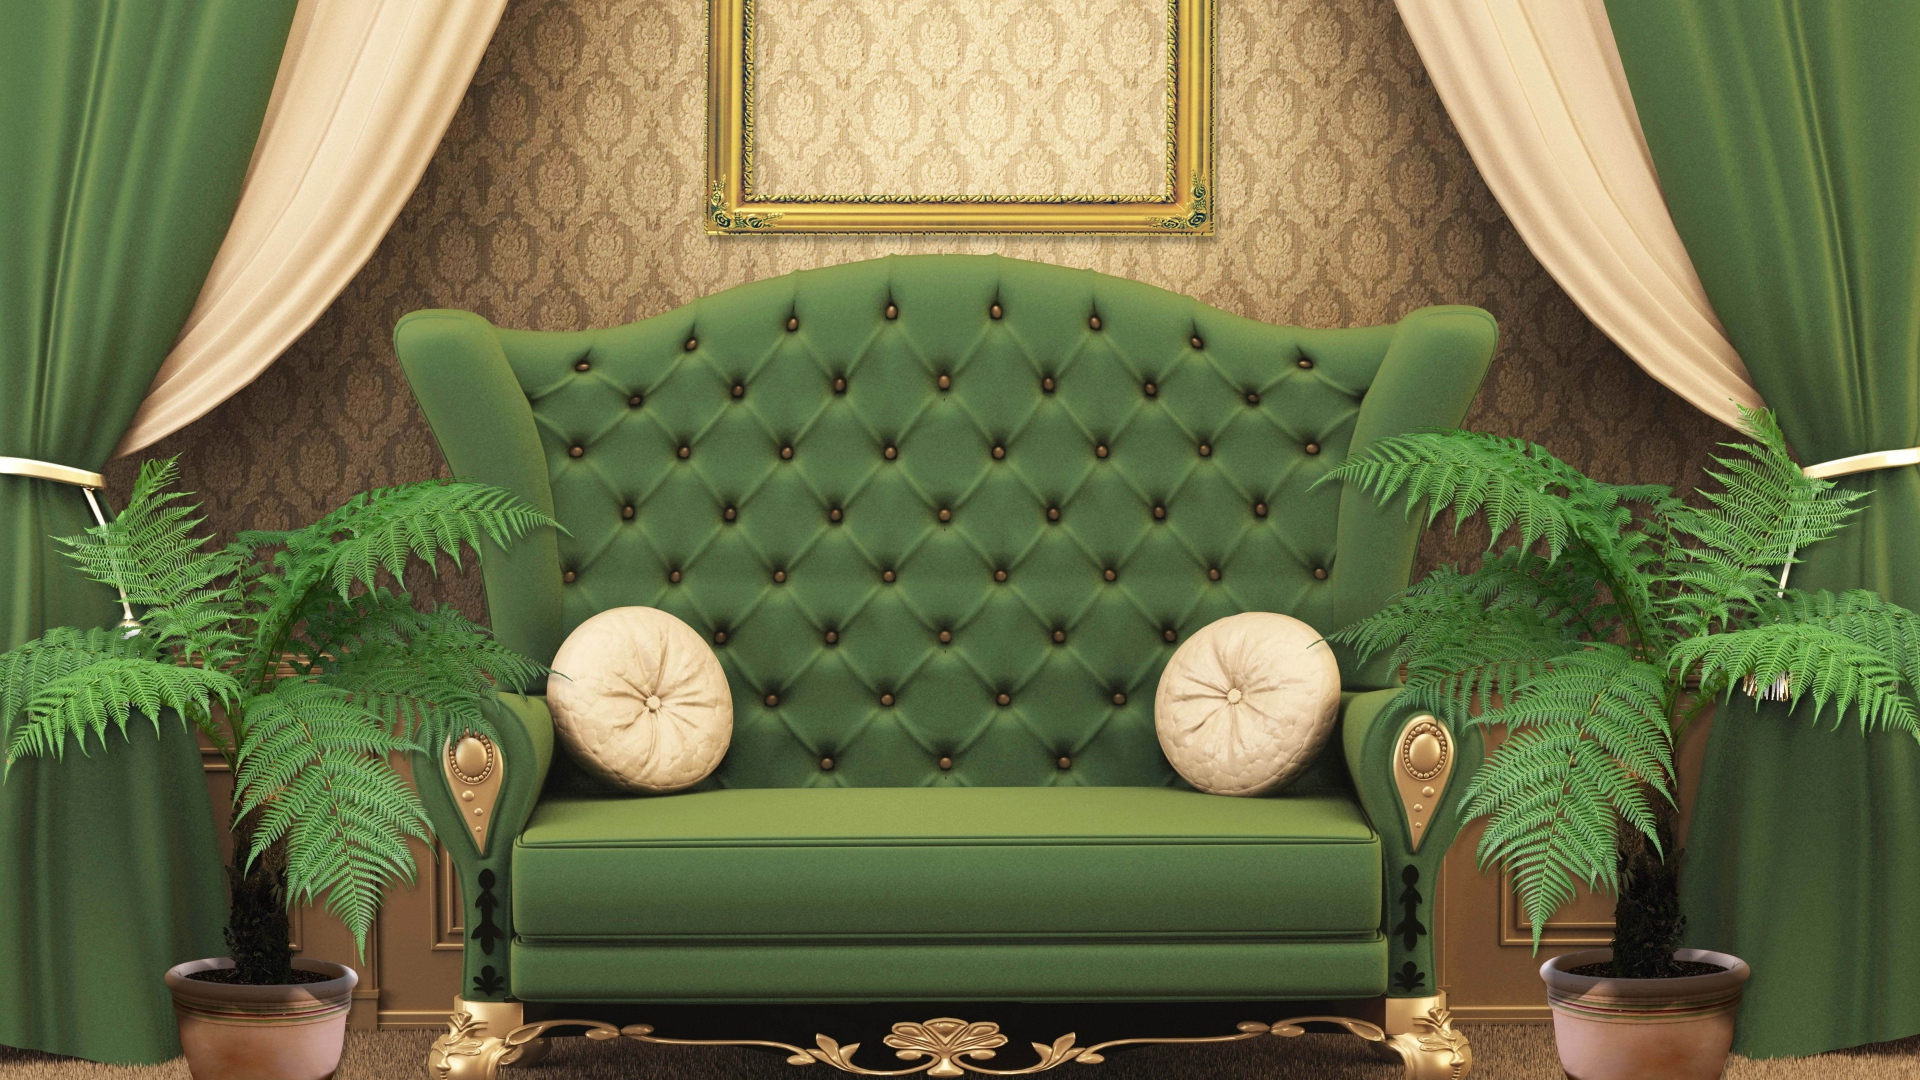 chair images hd painted rocking chairs download wallpaper 1920x1080 green room full